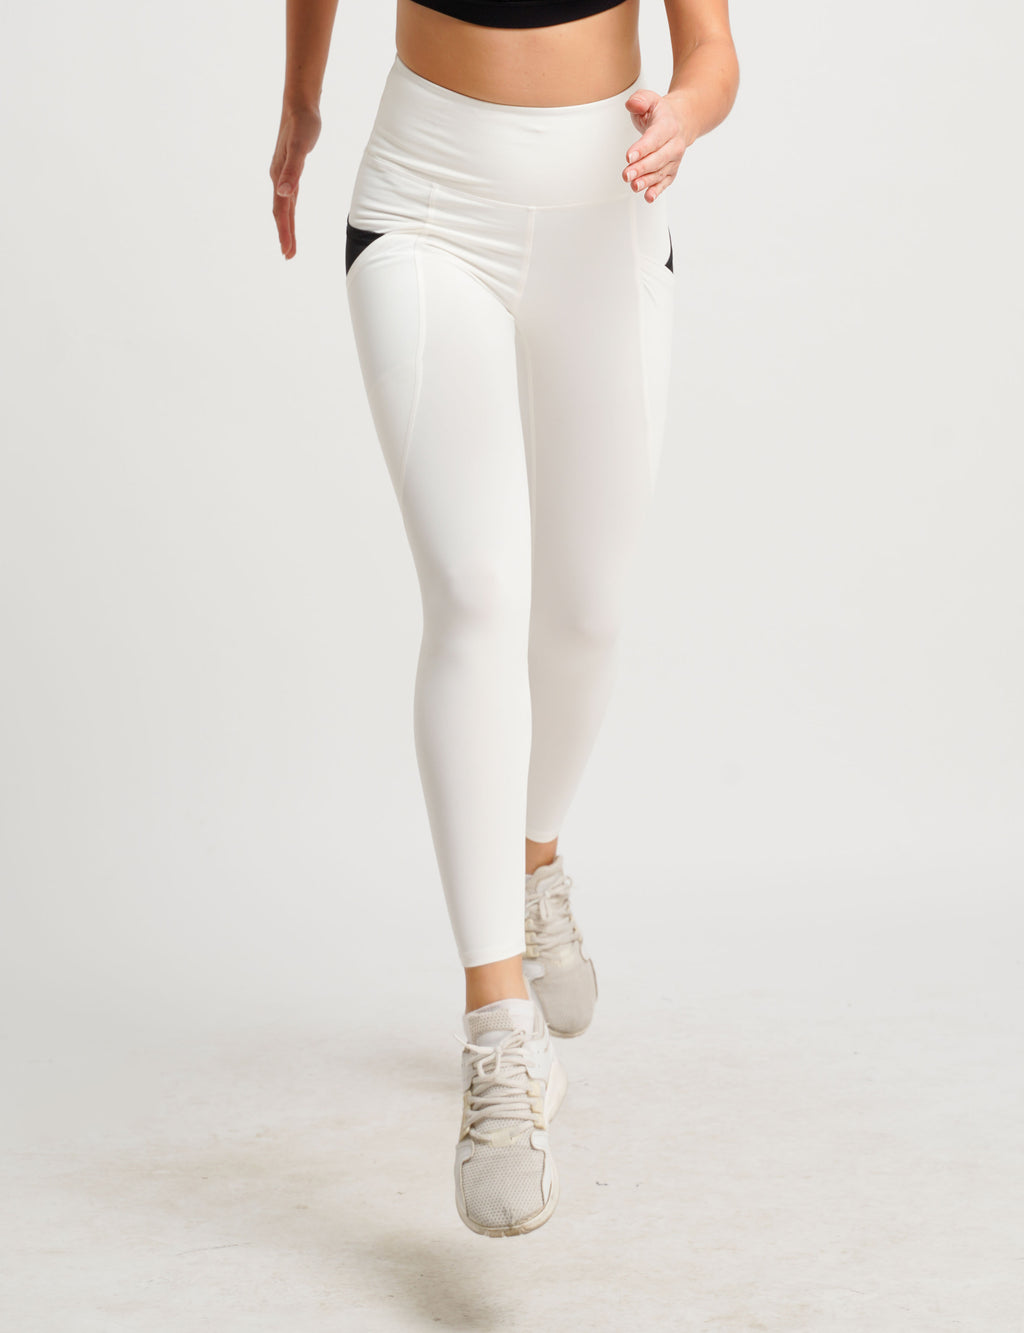 Anywhere Dual Side Pocket Tights High Rise Full Length Creamy White